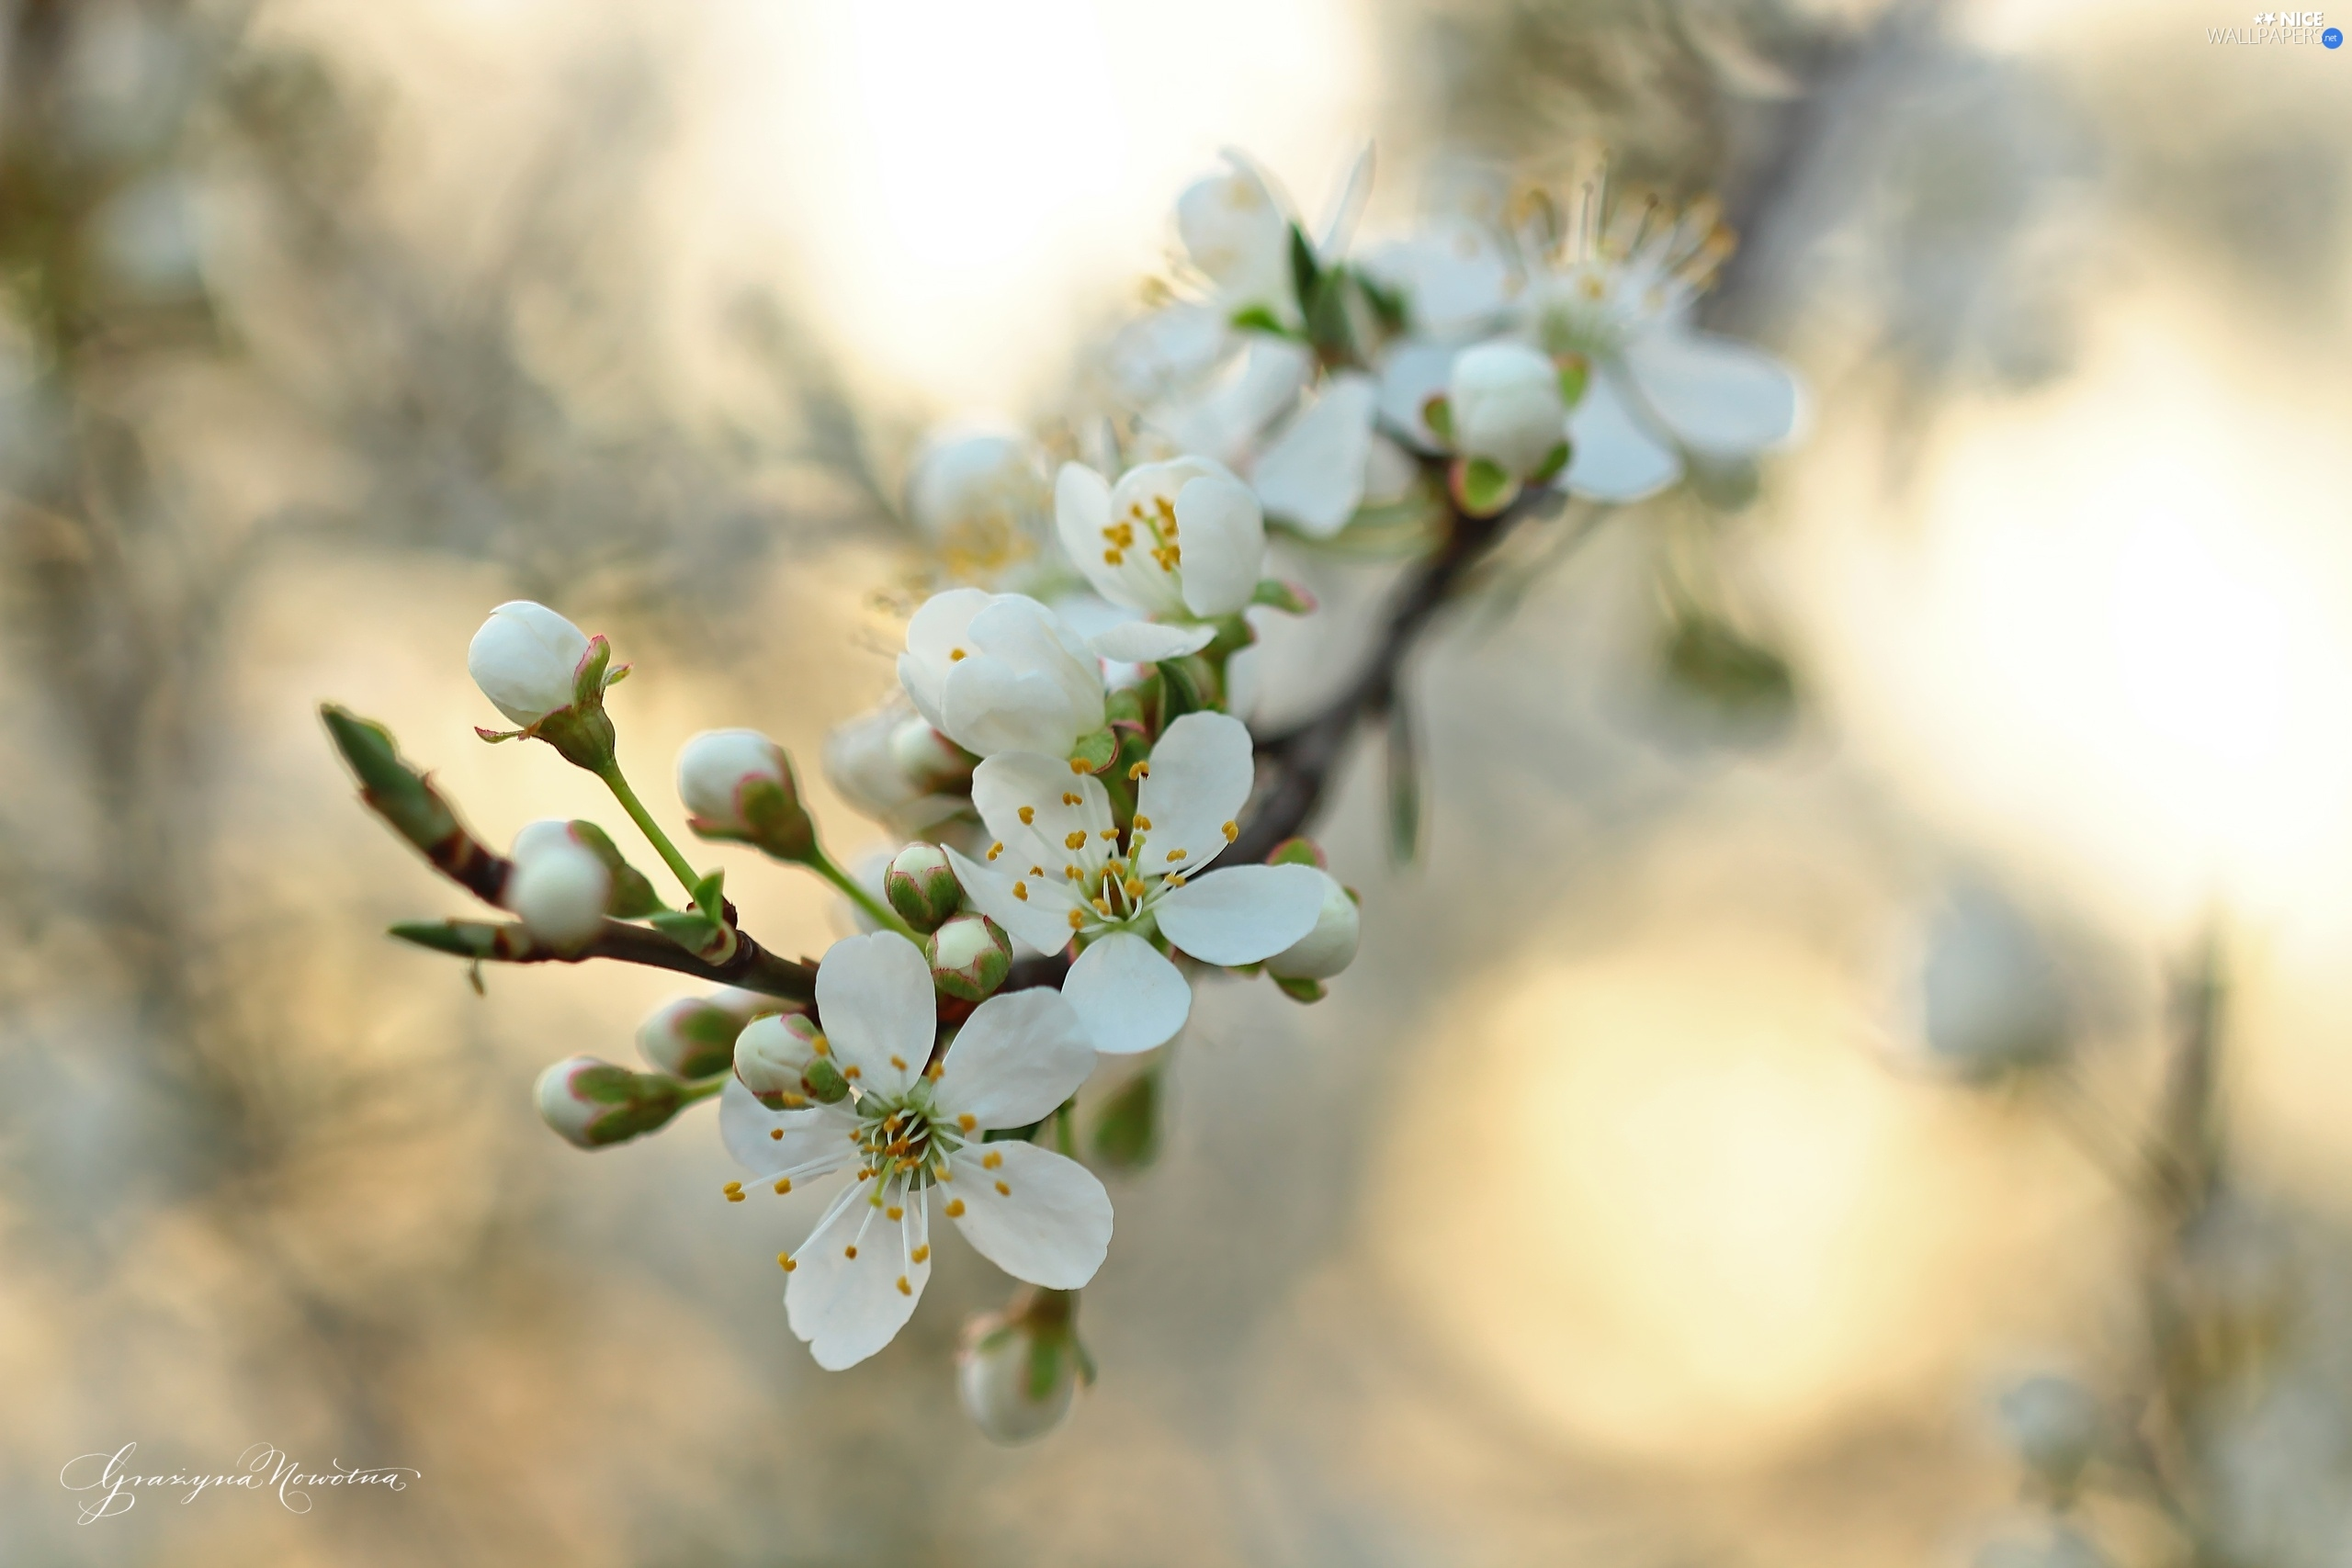 fruit trees White Flowers Nice wallpapers 2560x1707